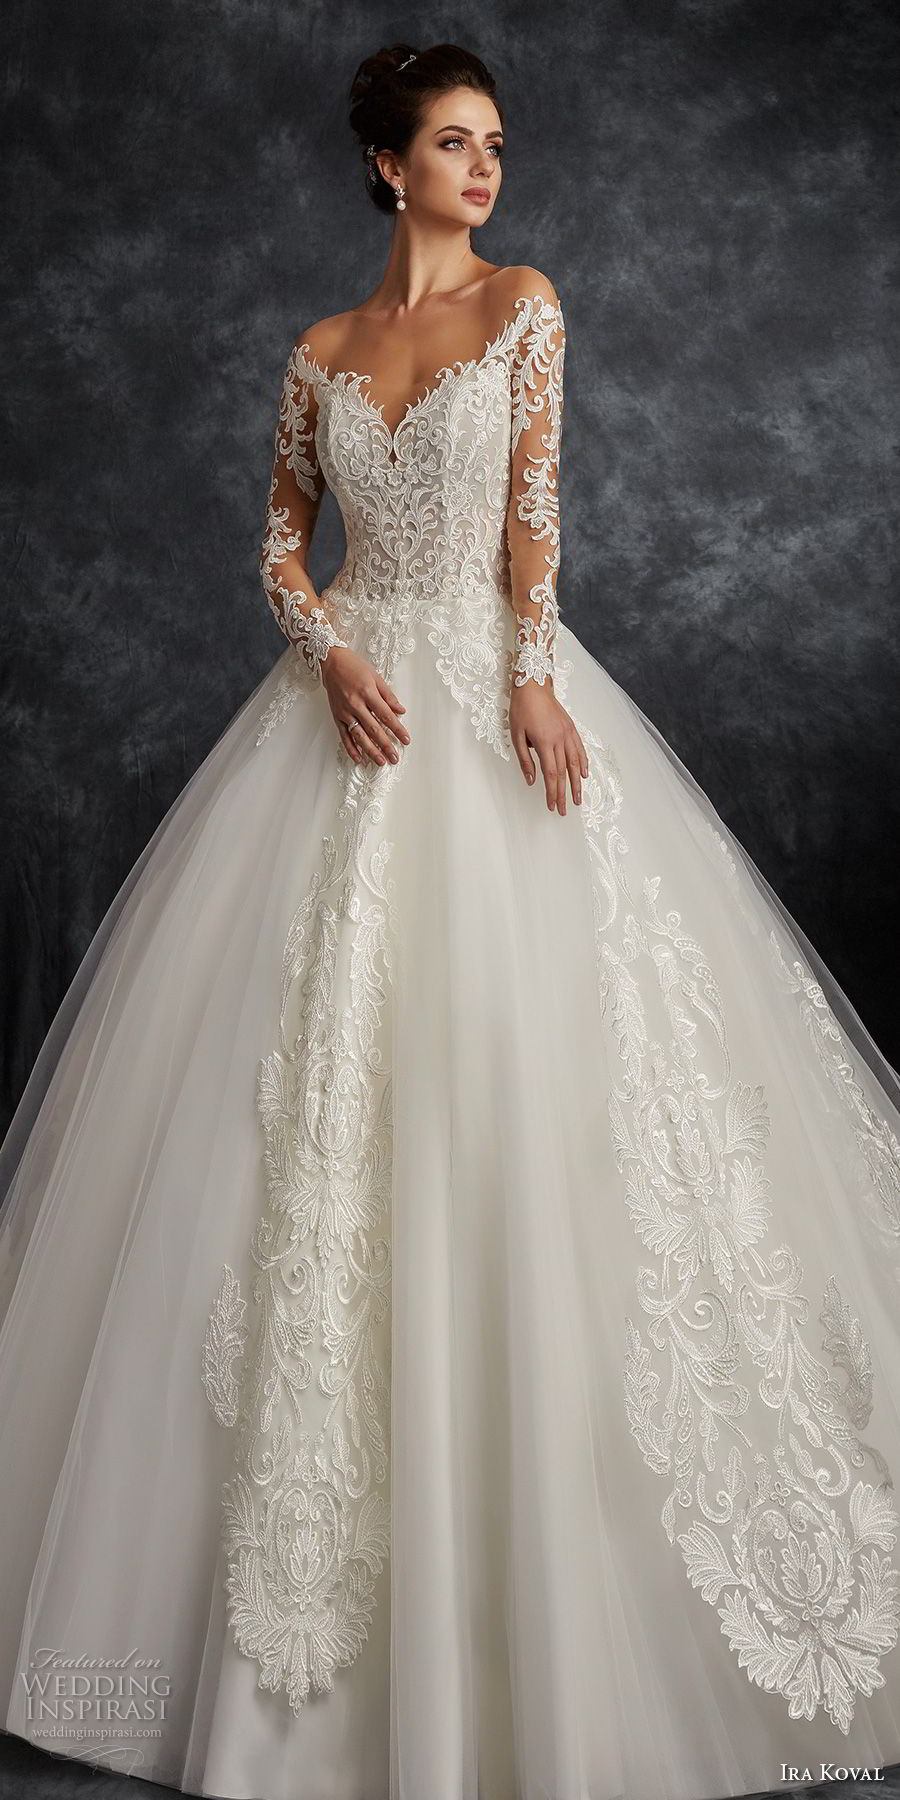 ira koval 2017 bridal long sleeves off the shoulder sweetheart neckline heavily embellished bodice elegant romantic ball gown a line wedding dress open back sweep train (616) mv fv